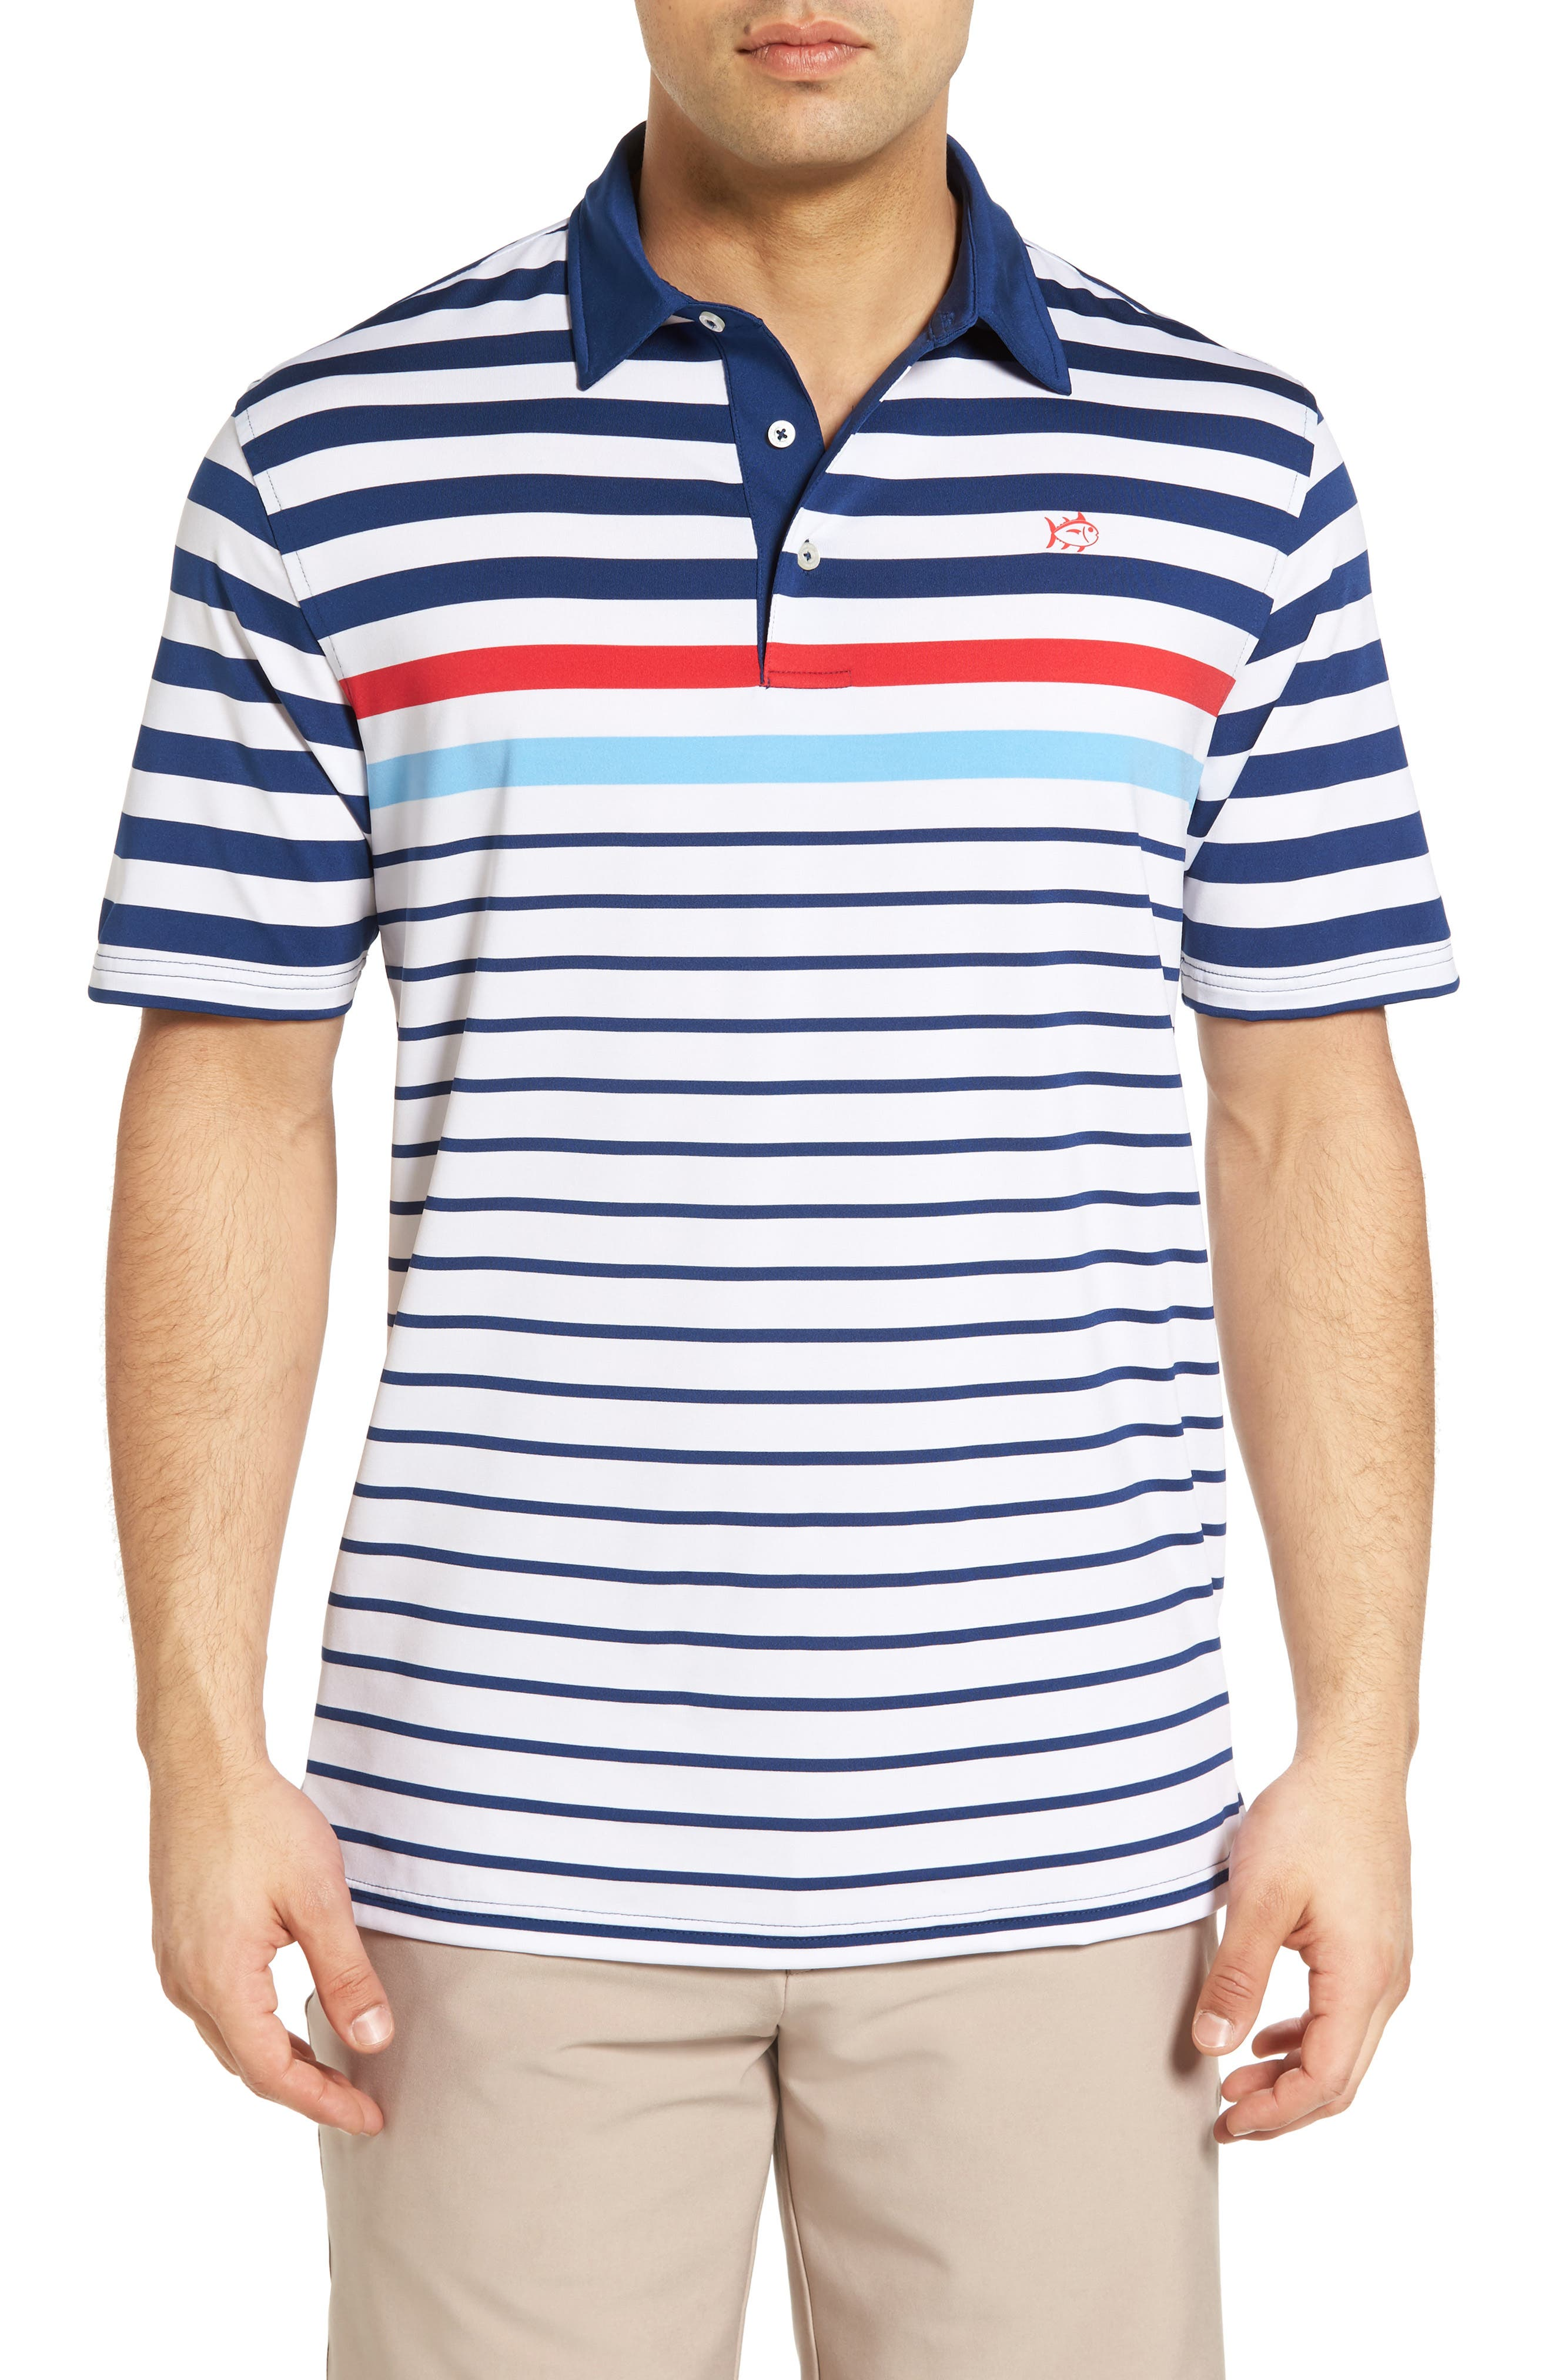 SOUTHERN TIDE Liberty Performance Polo